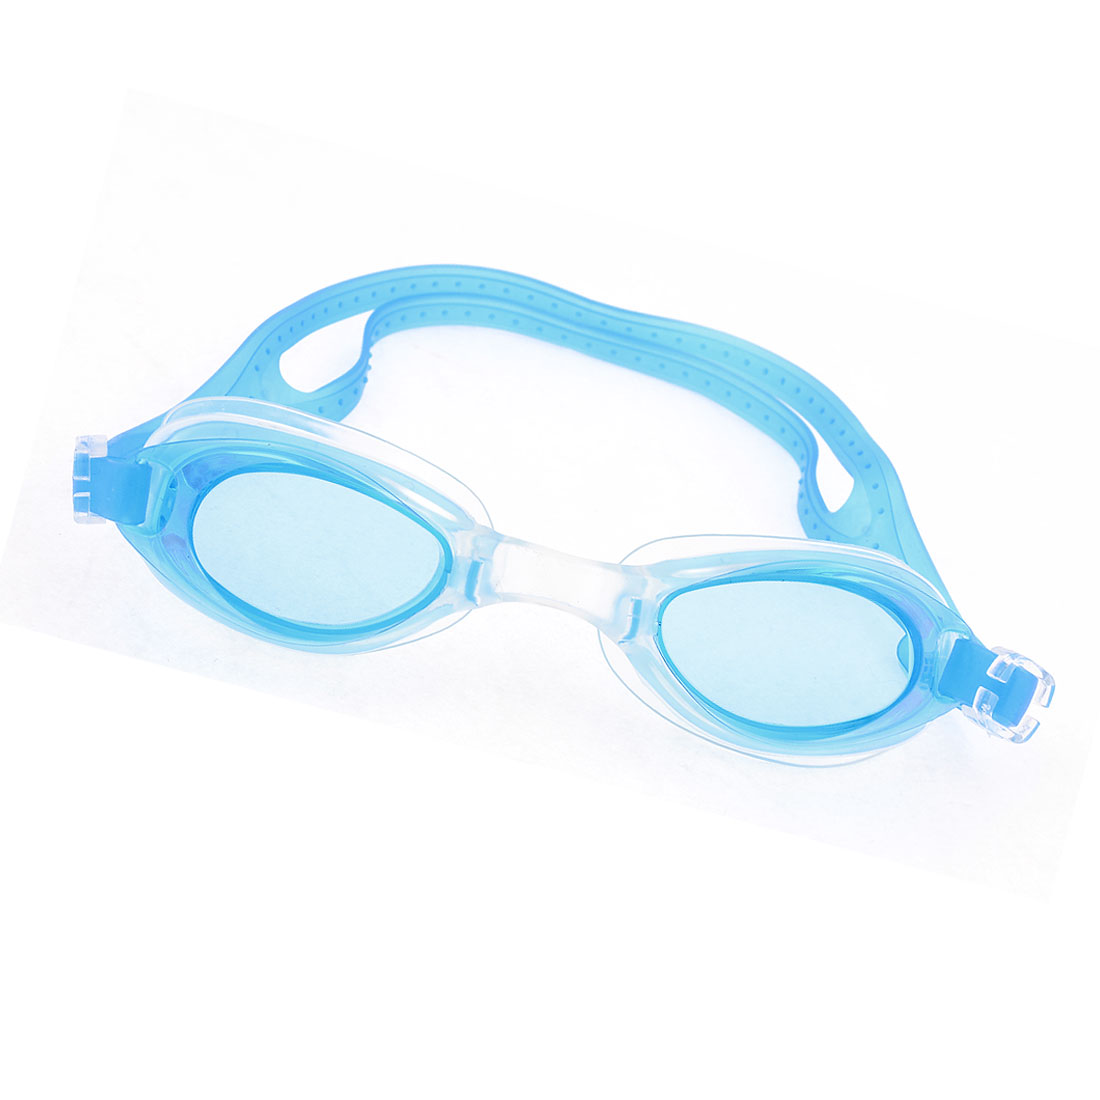 Lady Adjustable Strap Clear Blue Lens Swim Swimming Goggles Eyeglasses w Case